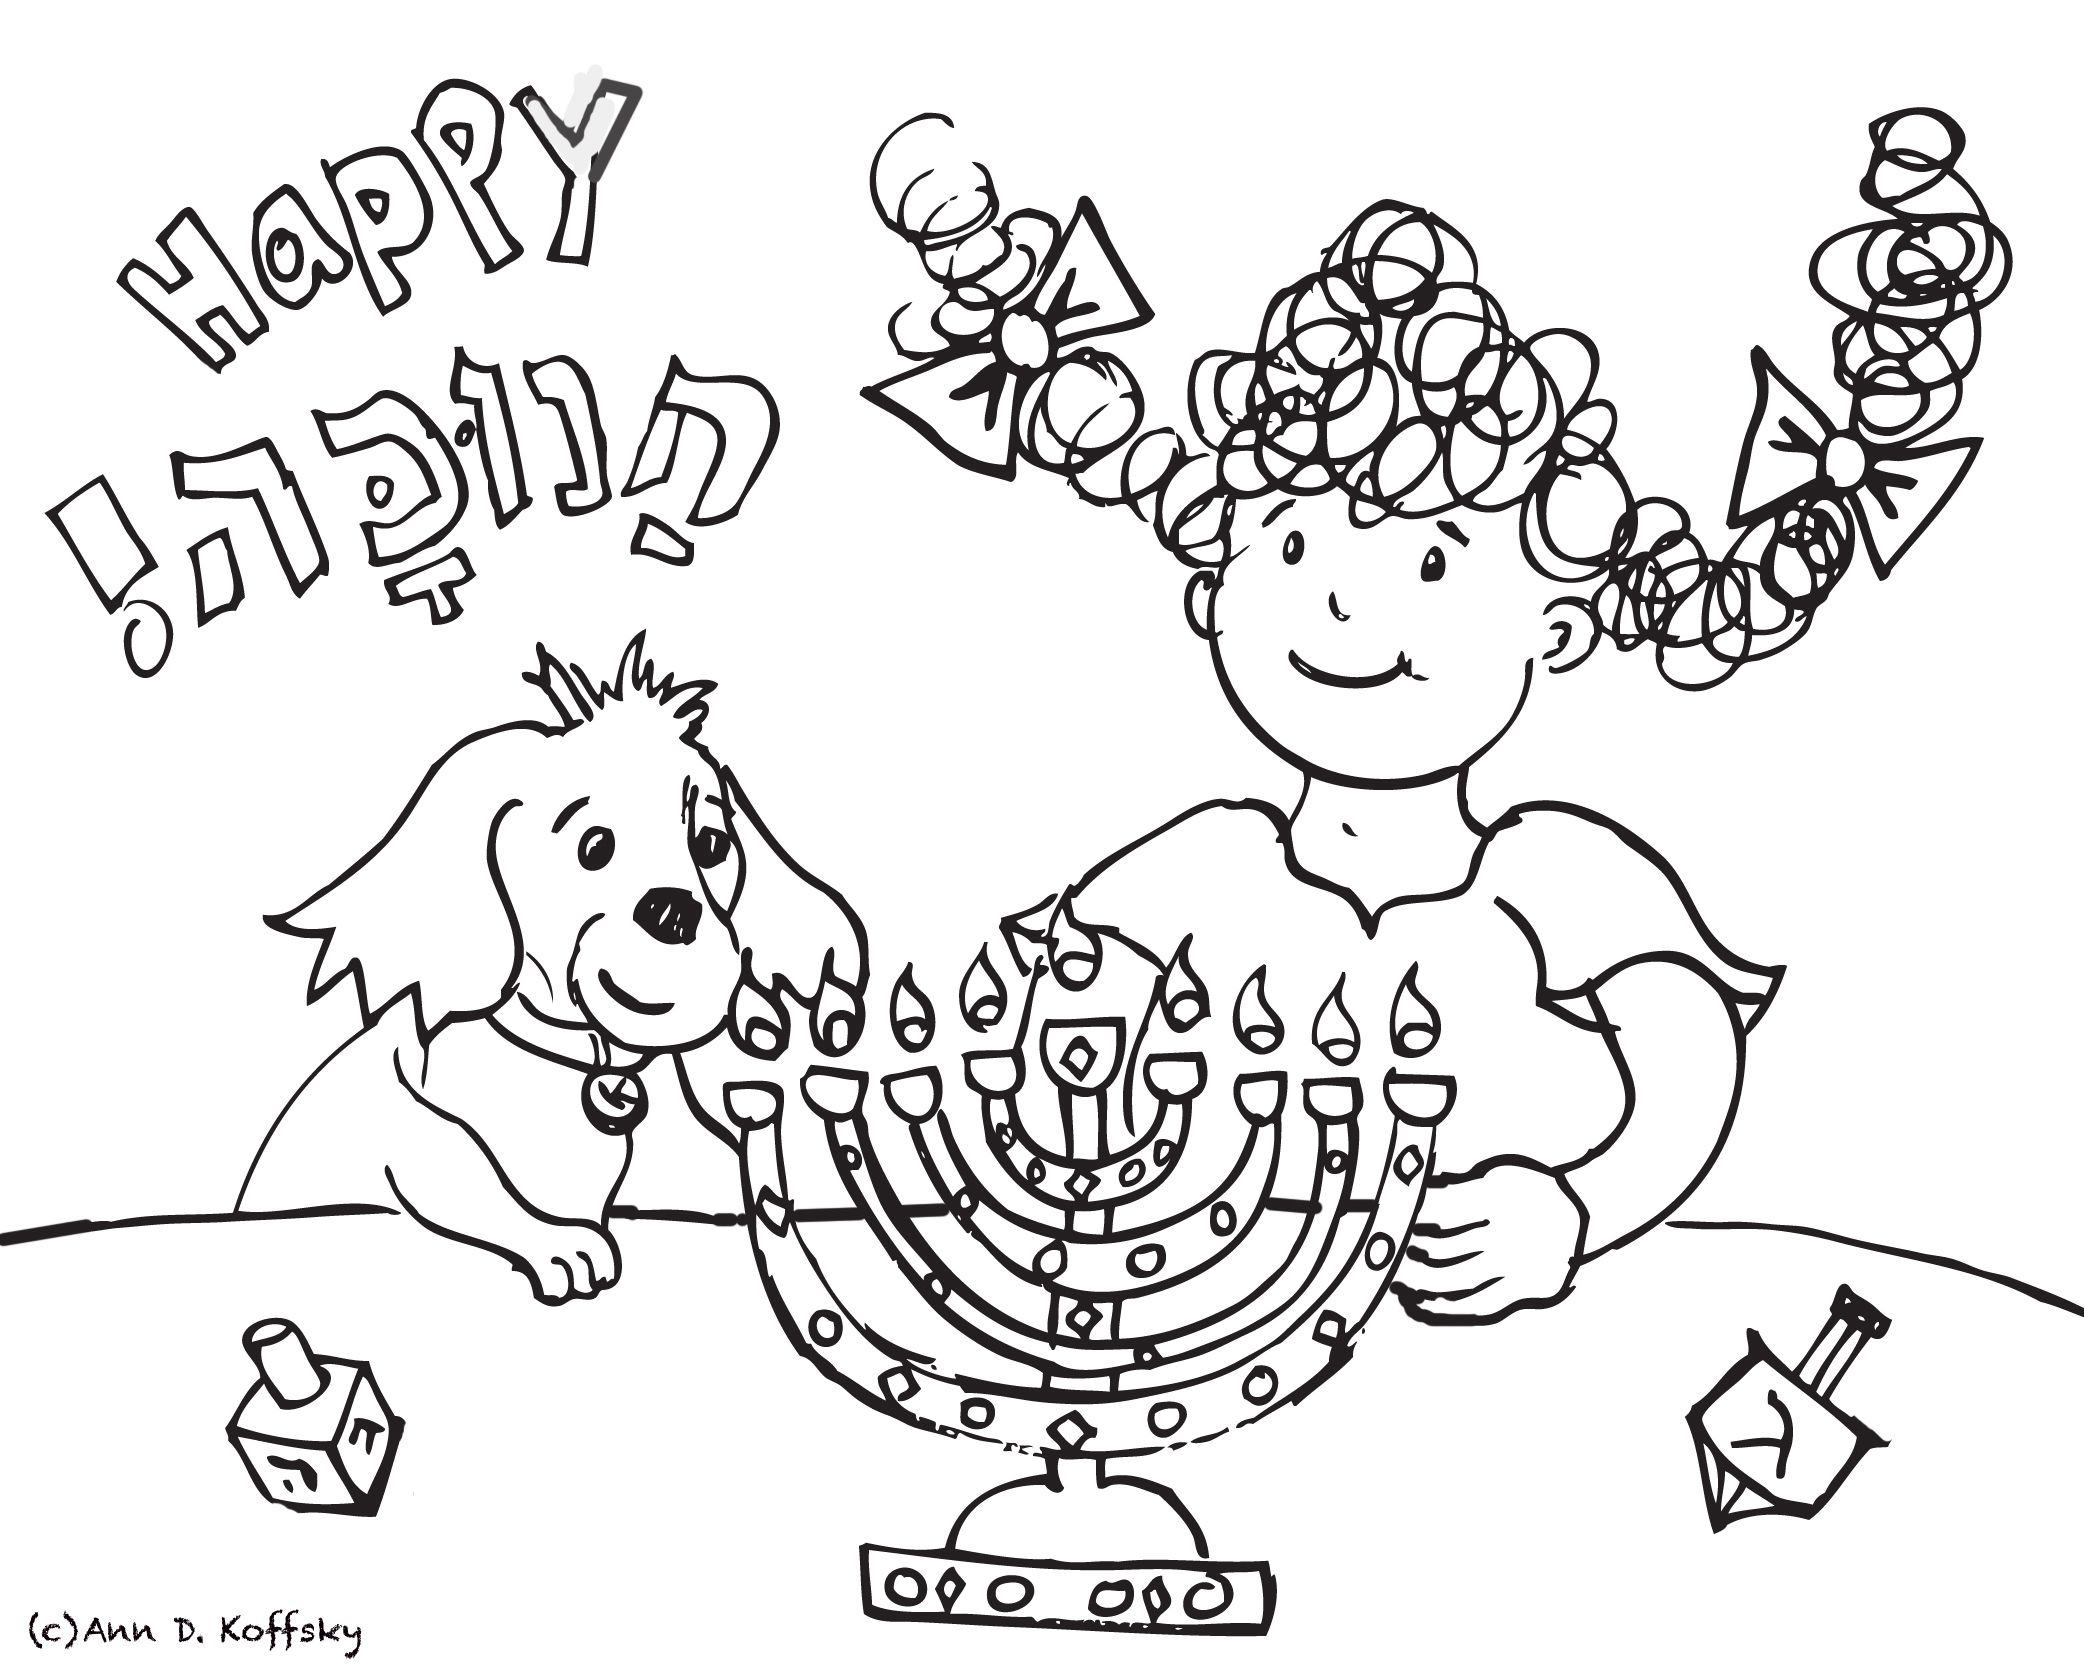 Happy Hanukkah from Kayla & Kugel! Happy hanukkah